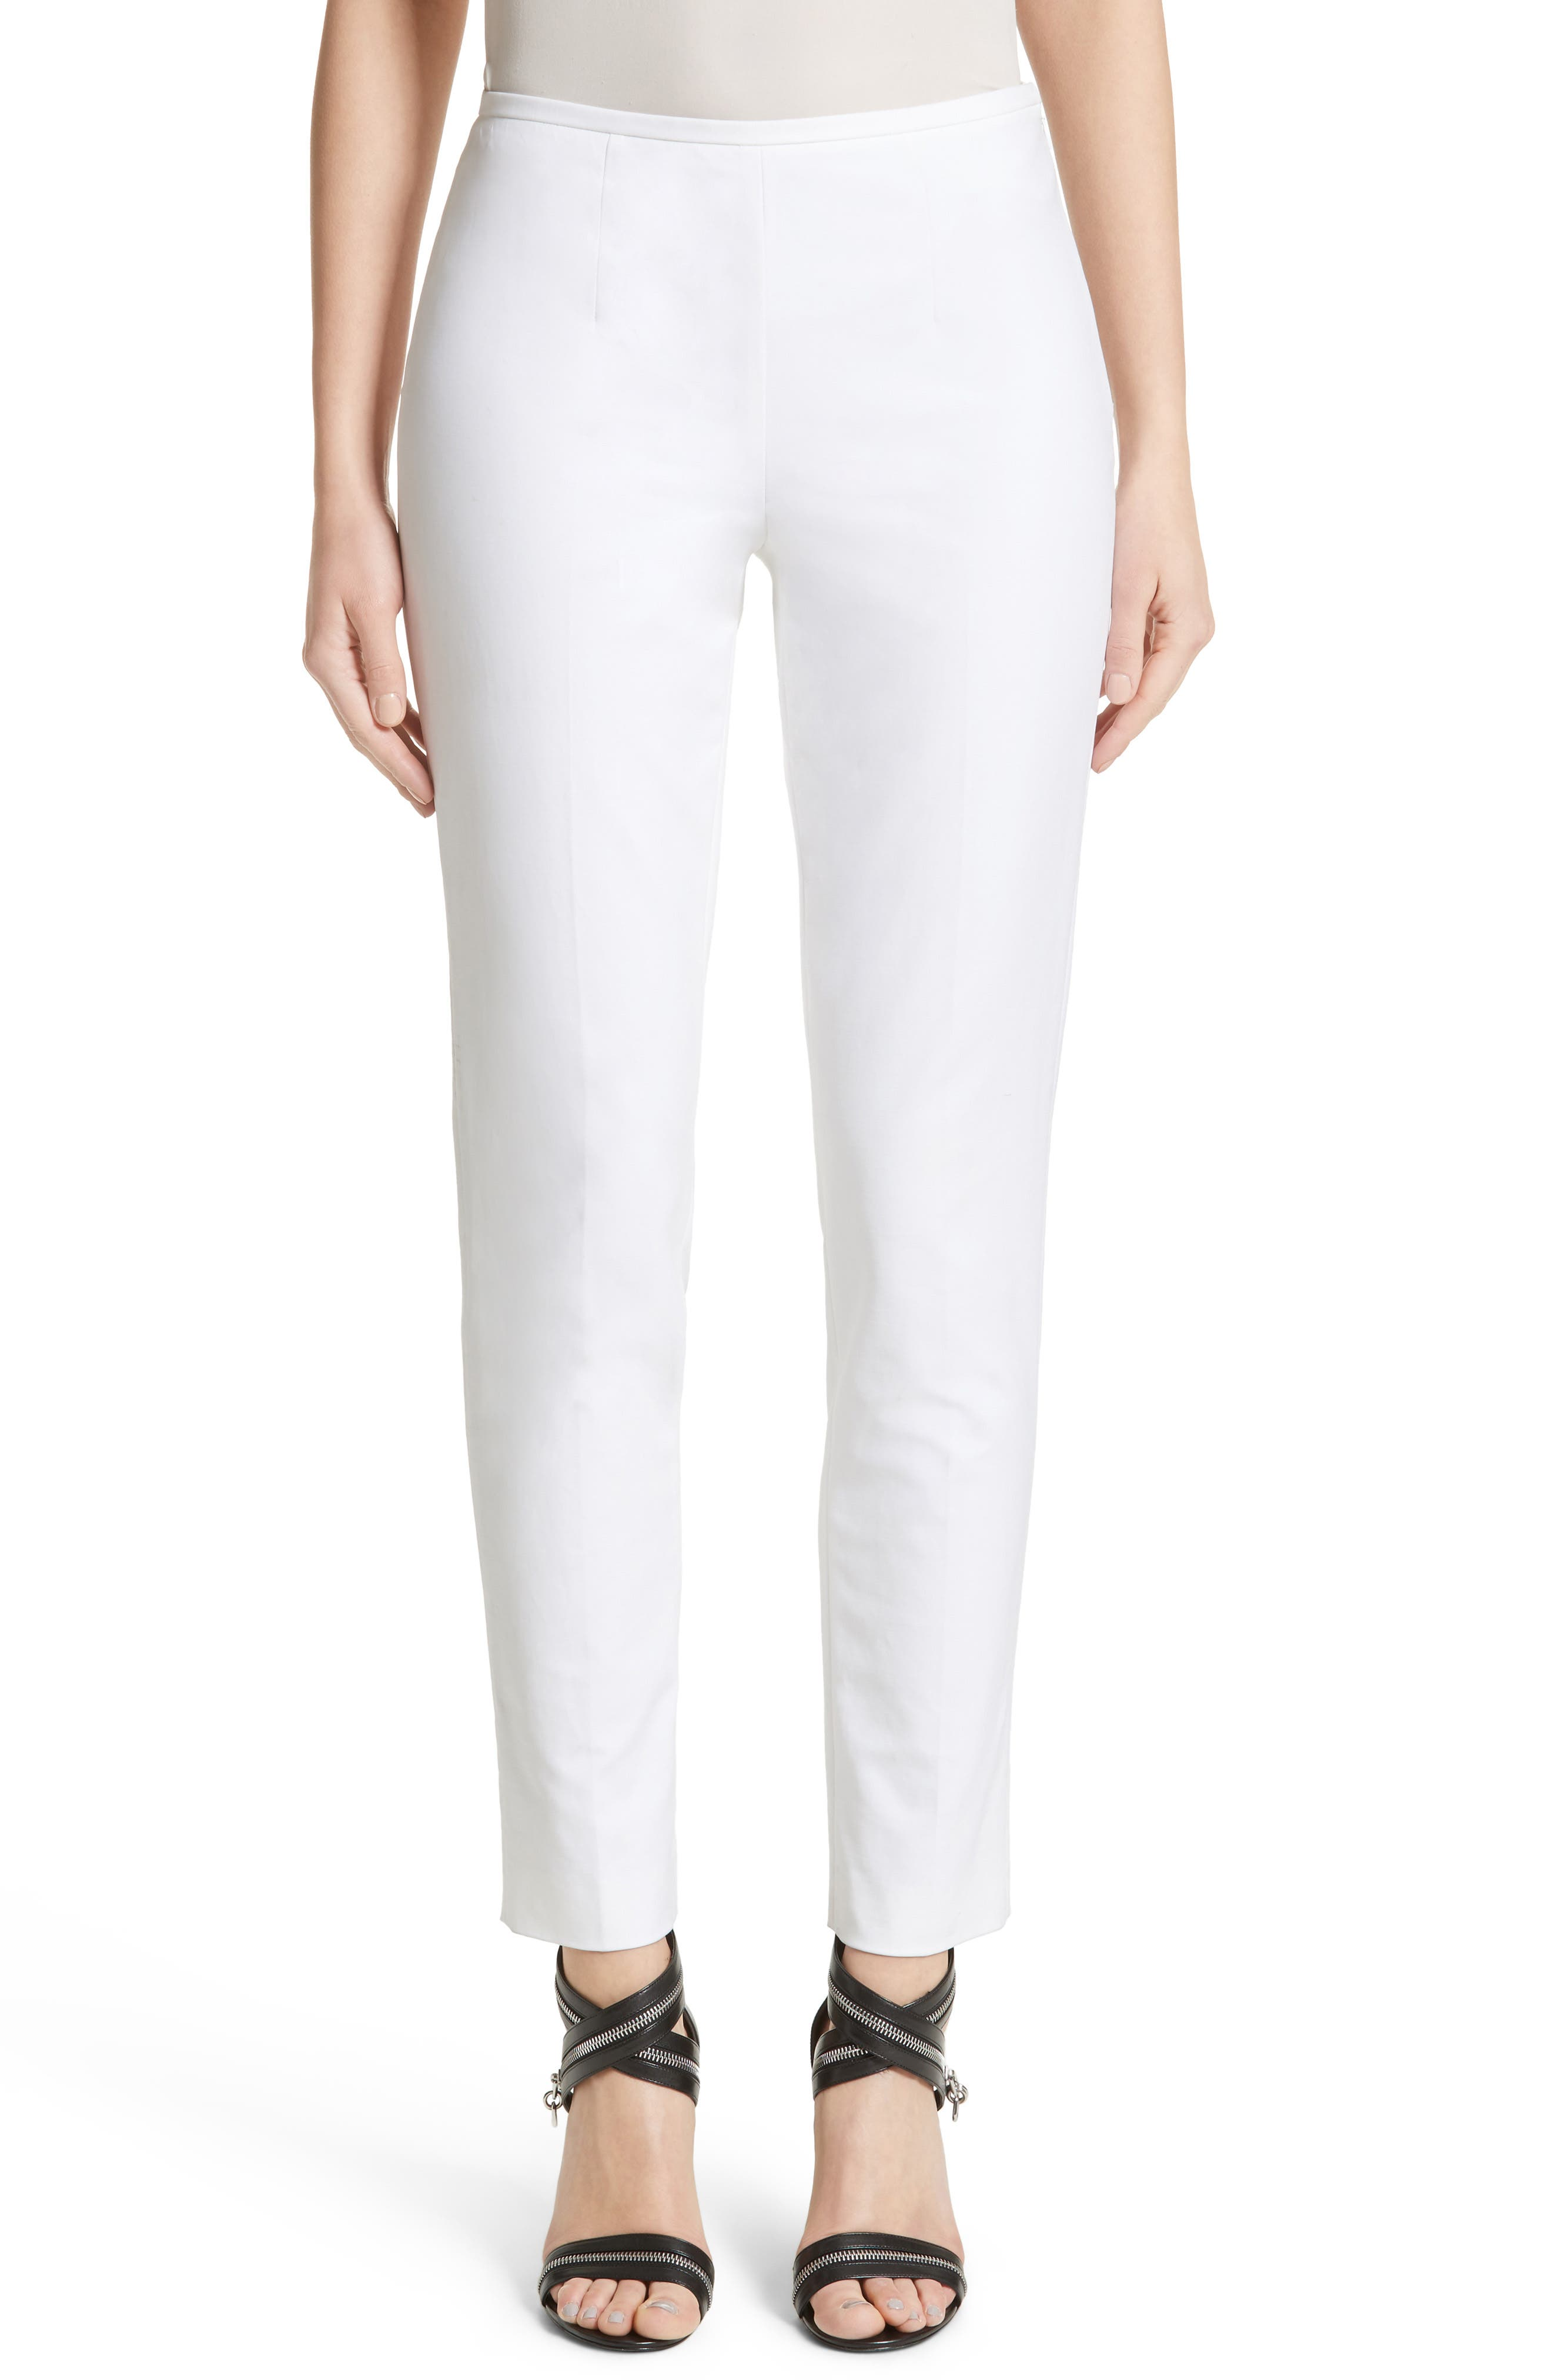 Michael Kors Stretch Skinny Pants